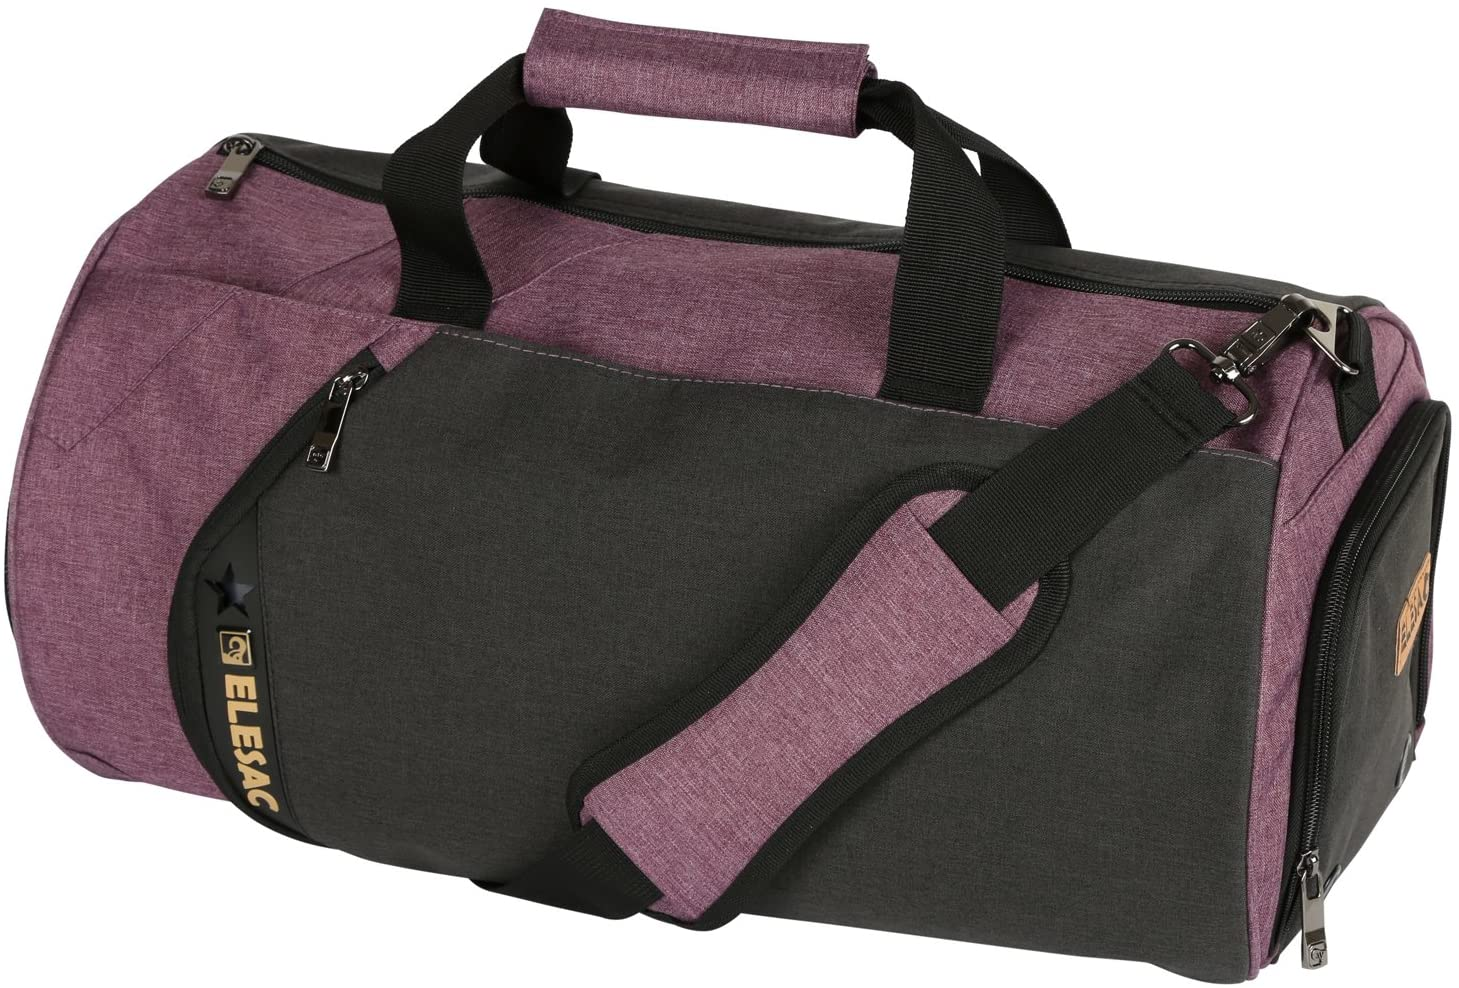 EleSac Canvas Style Round Gym Bag with Shoe Compartment for Men and Women, Sports Travel Duffel (Black-Purple Large)